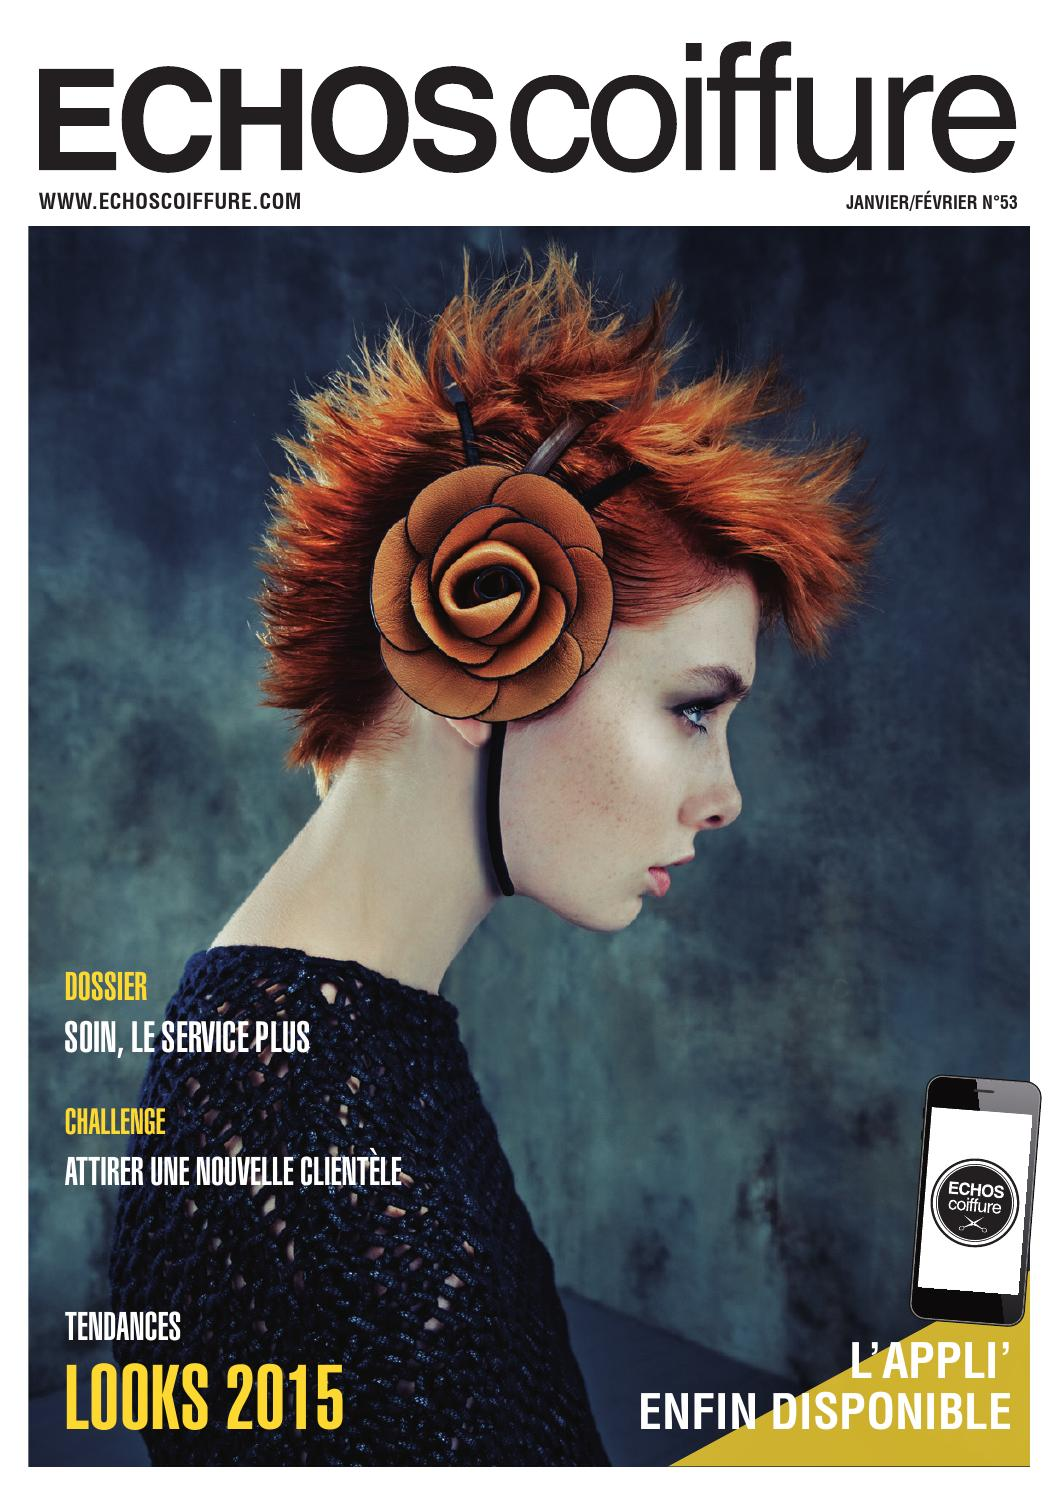 Echos Coiffure France n°53 by Eurobest Products - issuu 927ece4caf18